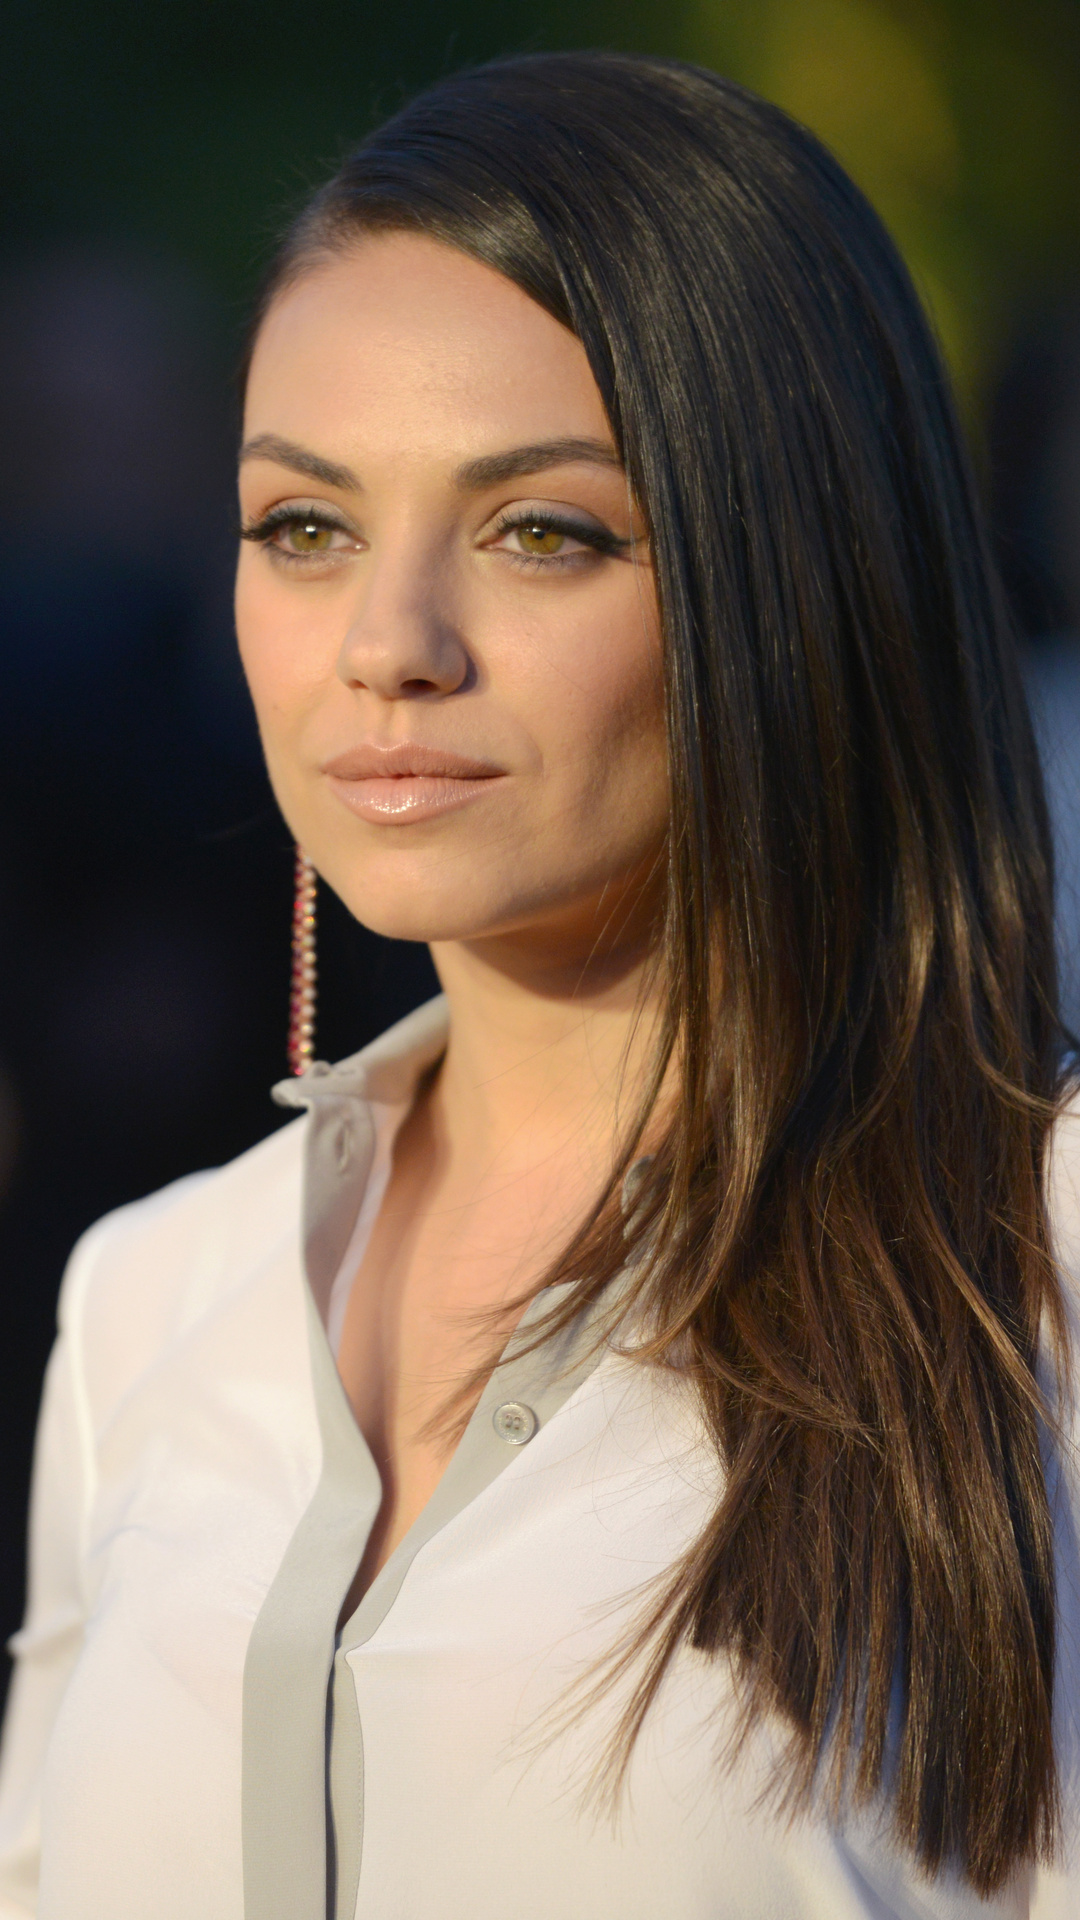 1080x1920 mila kunis 2017 8k iphone 7,6s,6 plus, pixel xl ,one plus